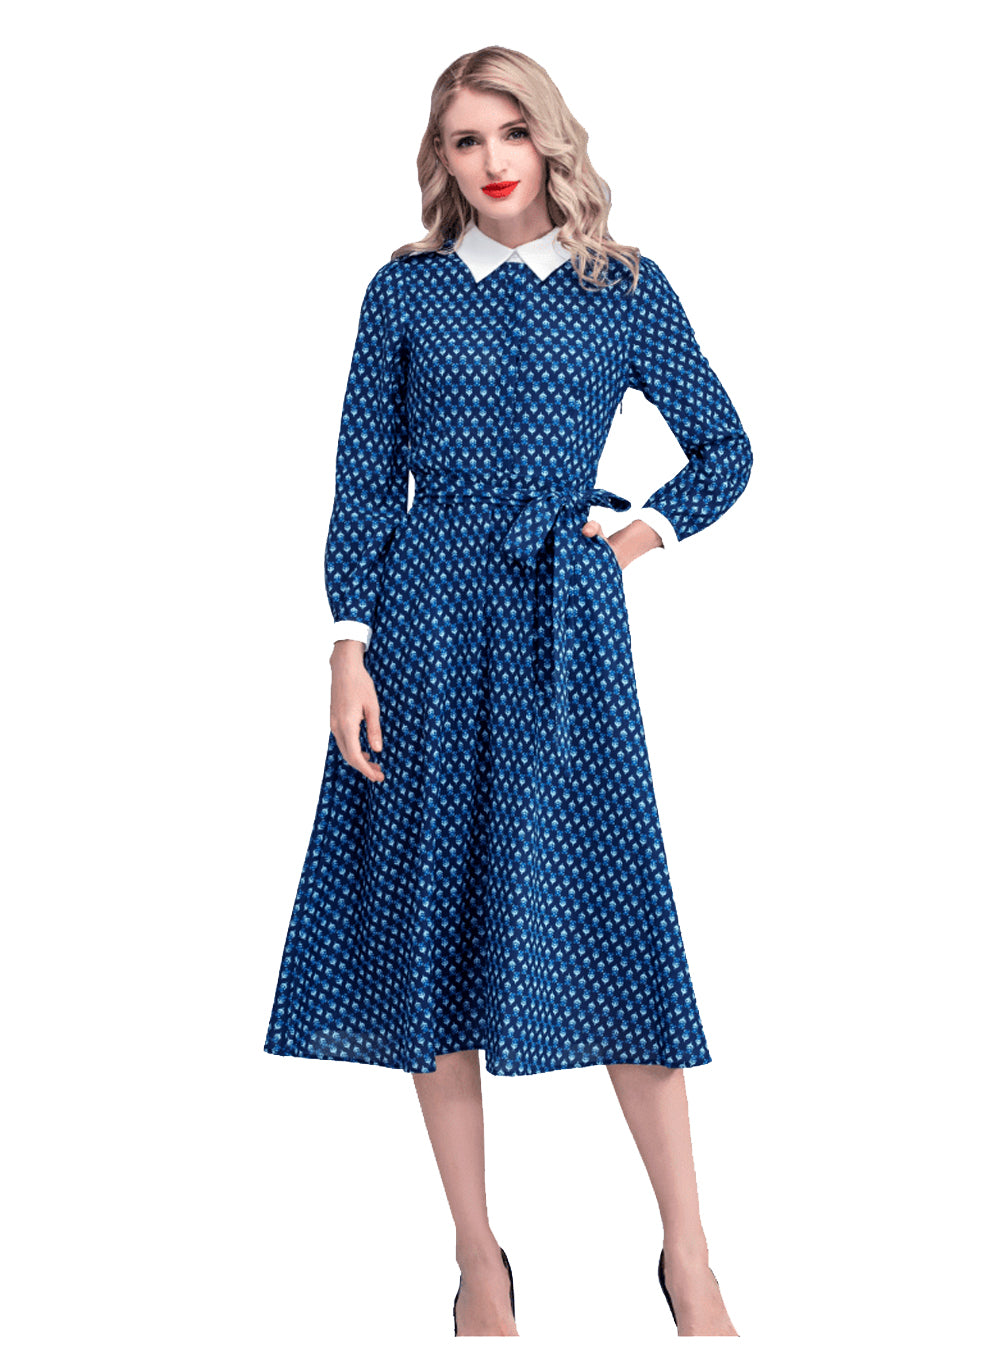 Kate Geo Printed Belted Flared Midi Dress in Dark Blue